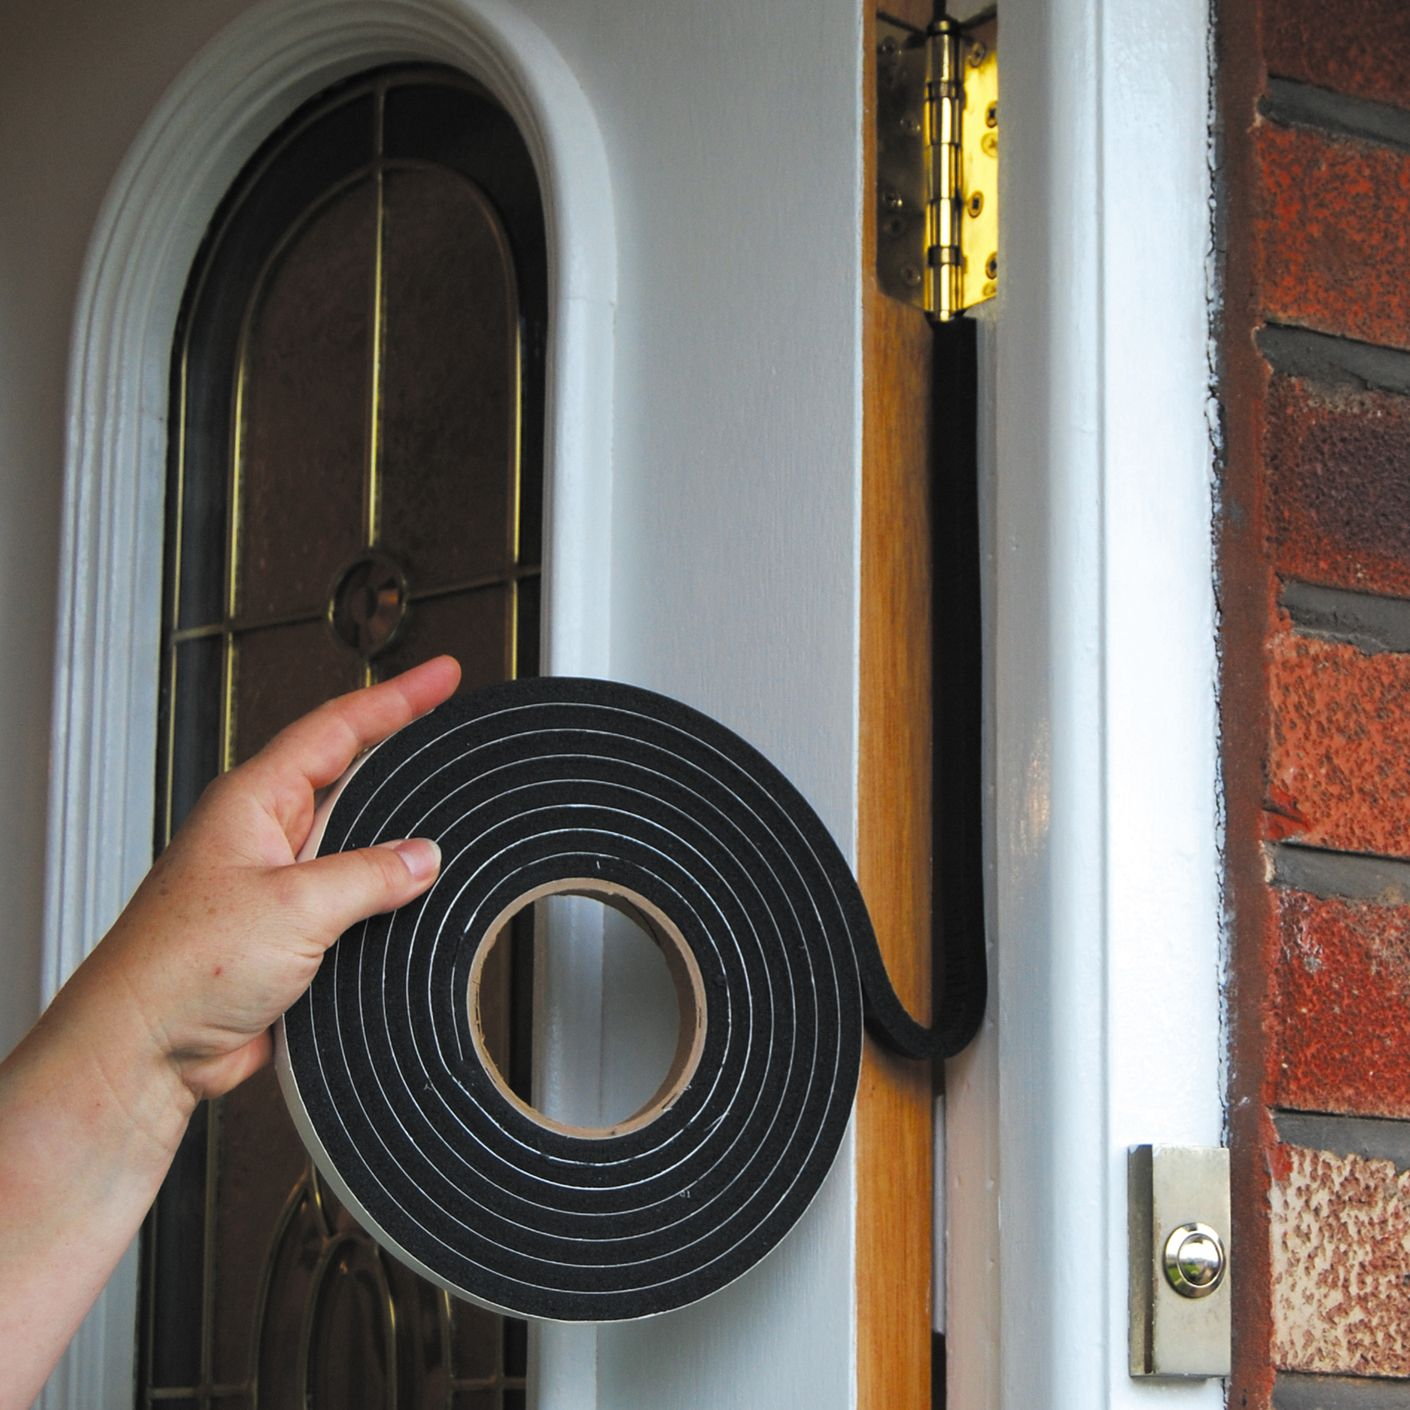 Battic Door® Home Energy Conservation Products Stop Drafts and Save Energy.